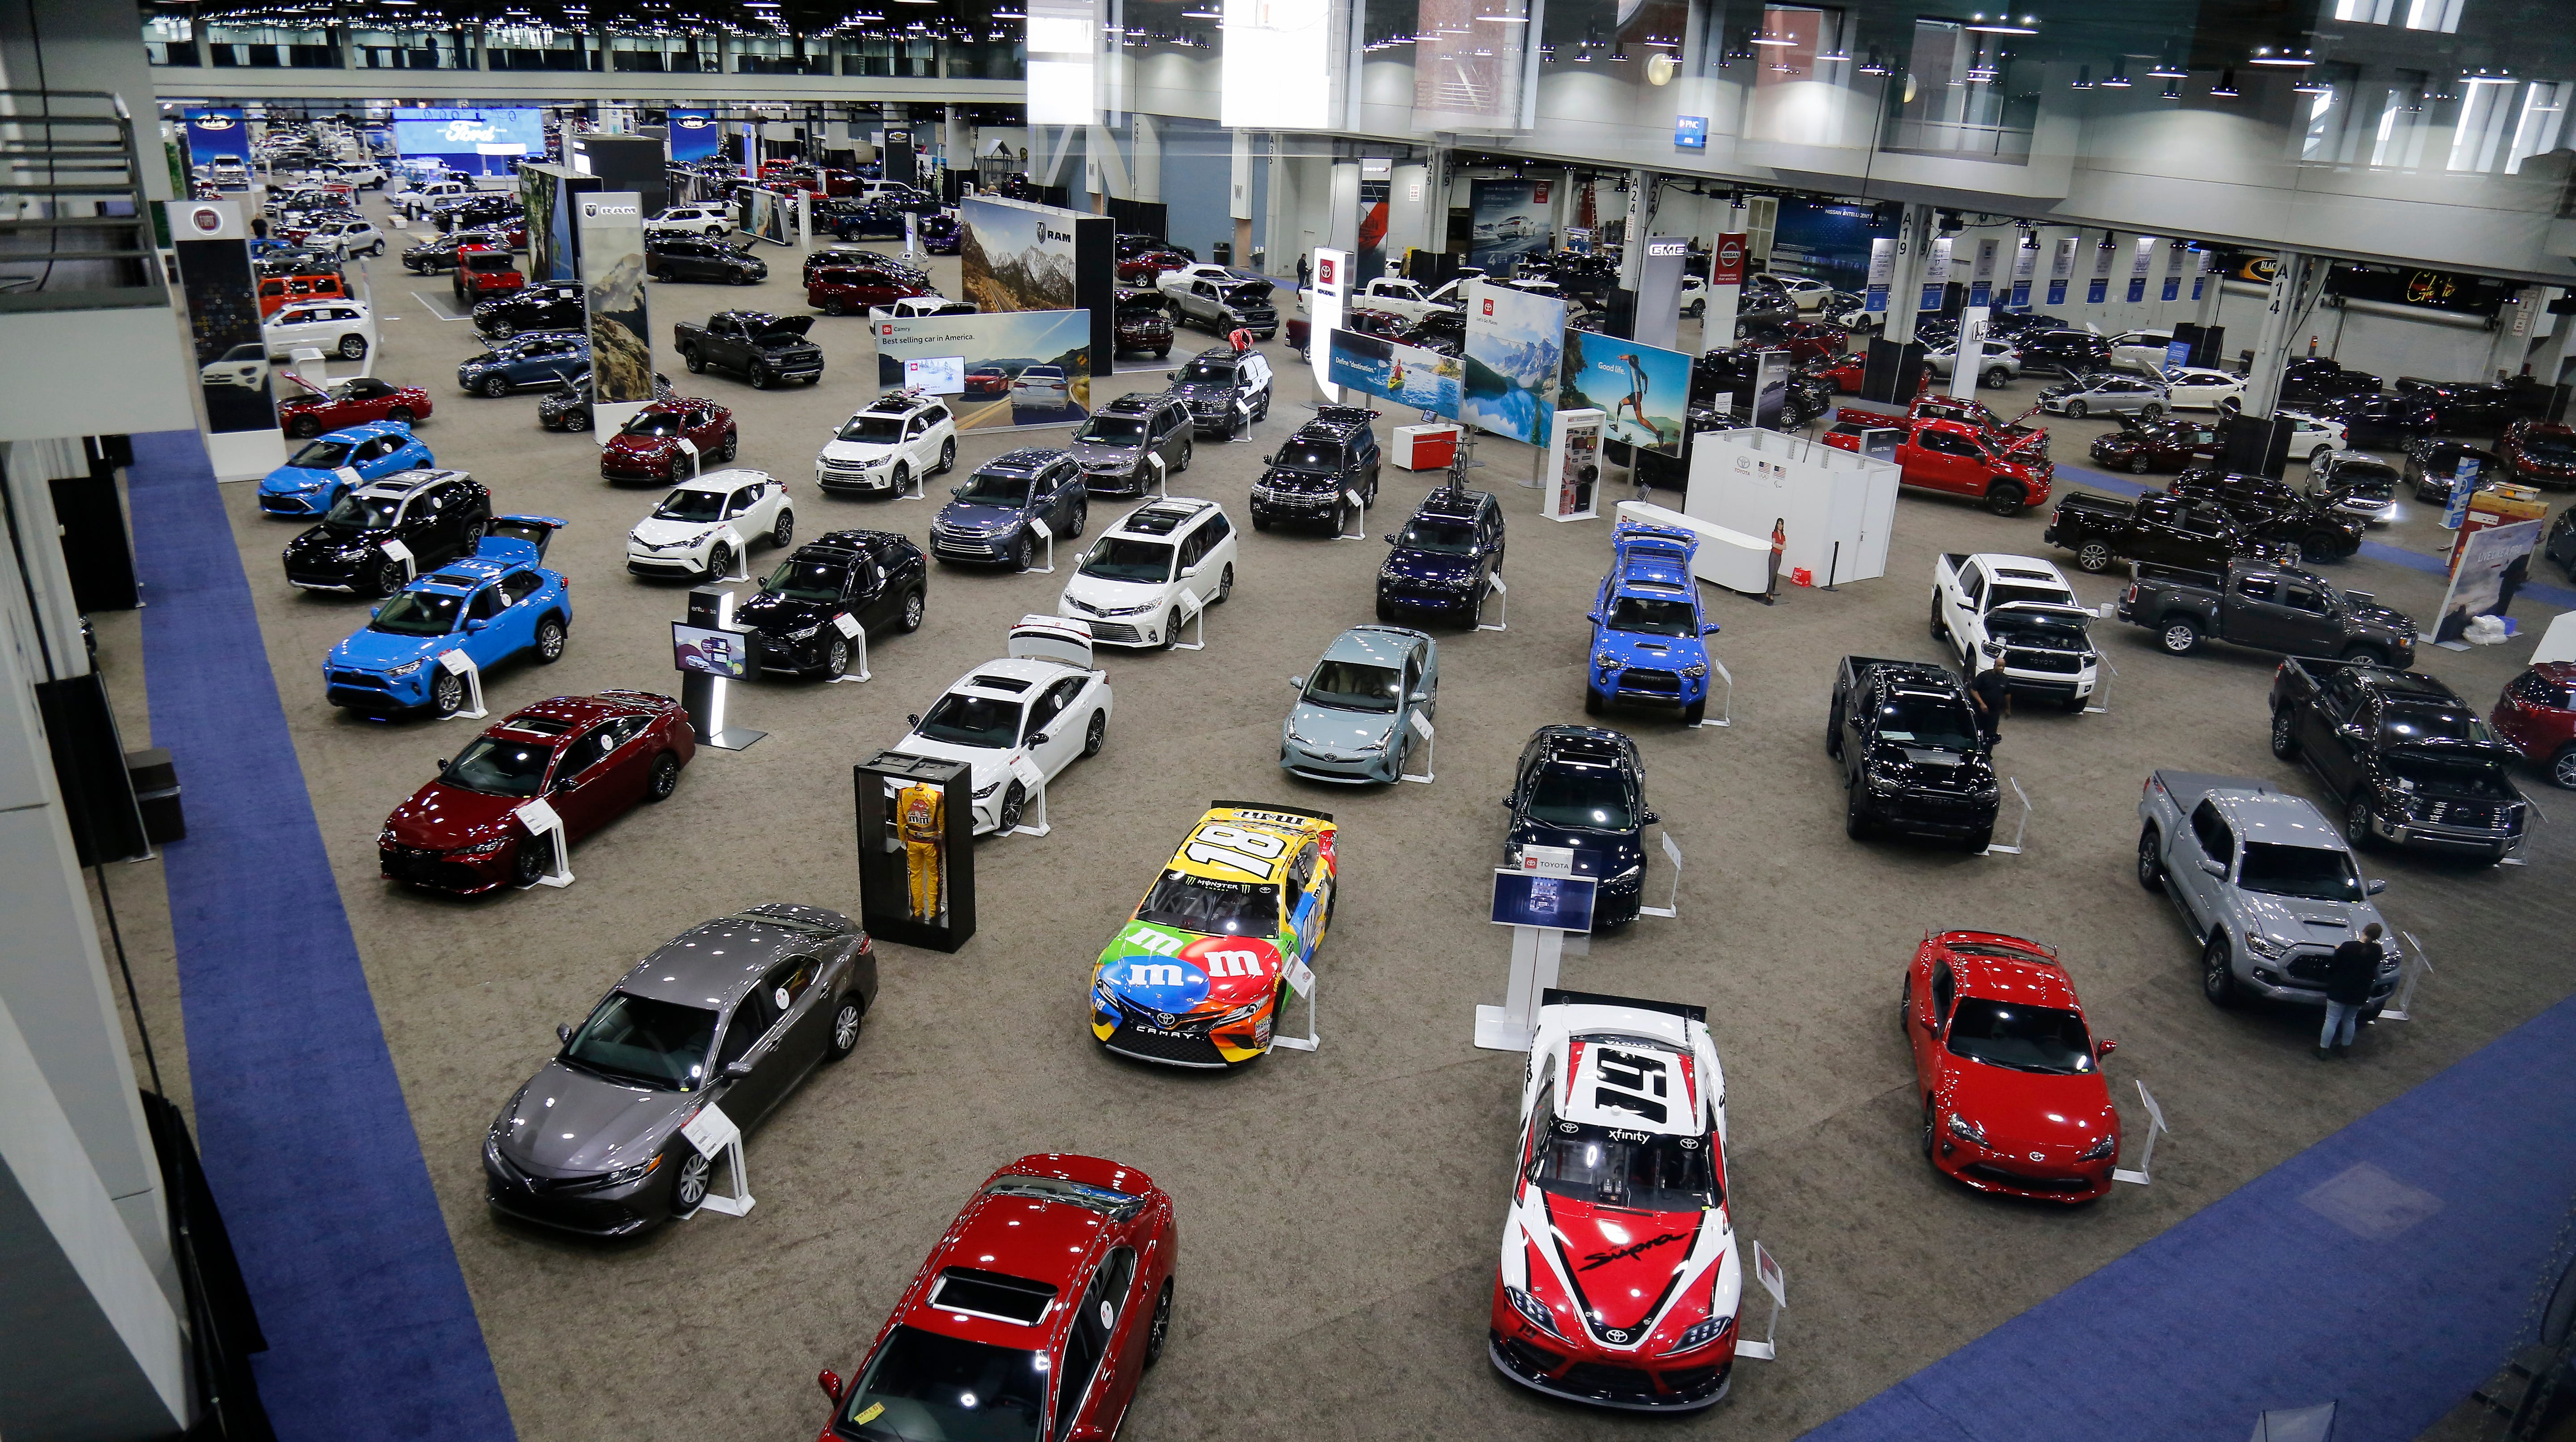 Cincinnati Auto Expo postponed until May due to COVID-19